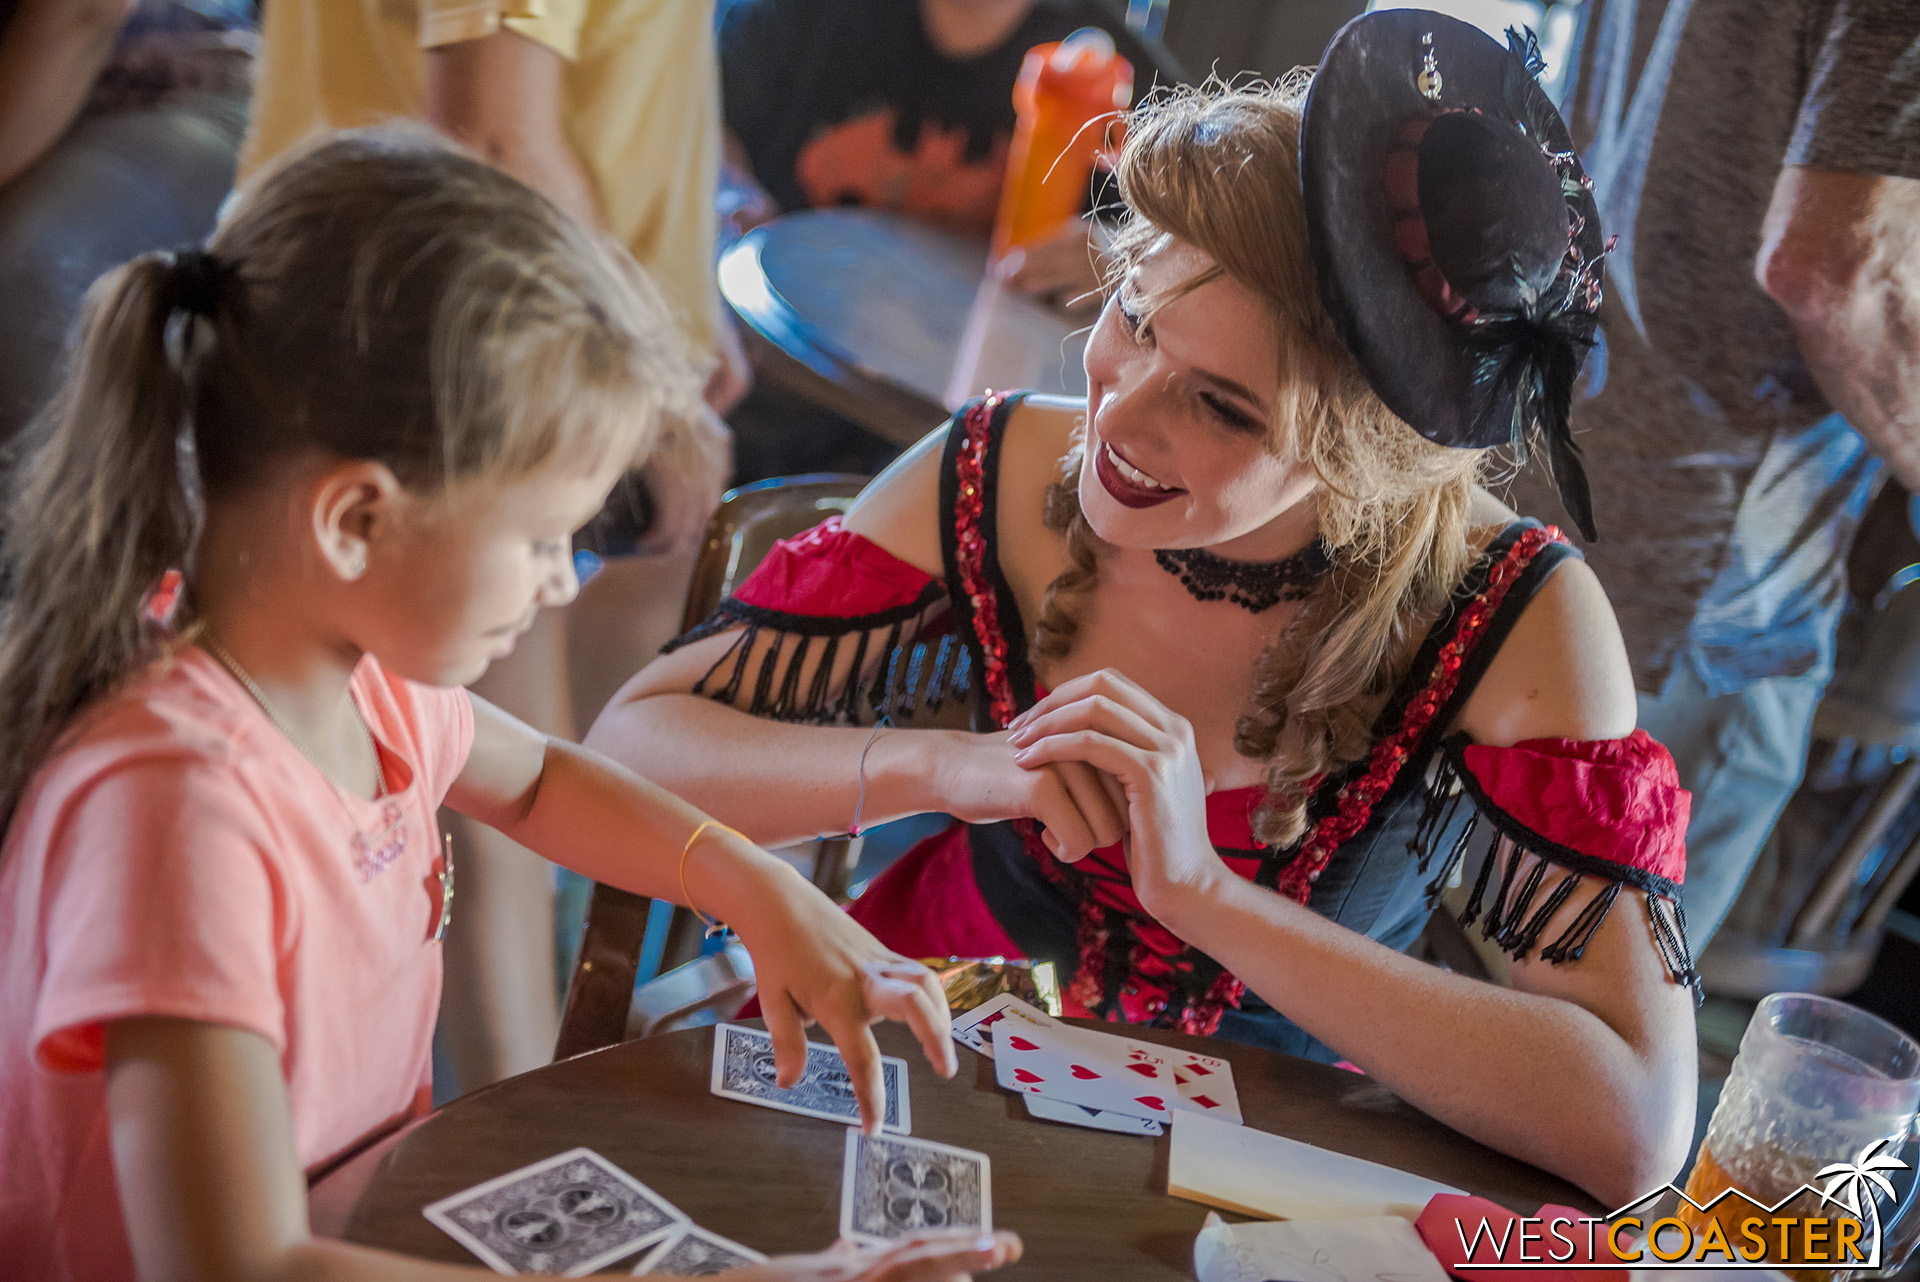 Card play happens at the Calico Saloon with Violet Lee as well.